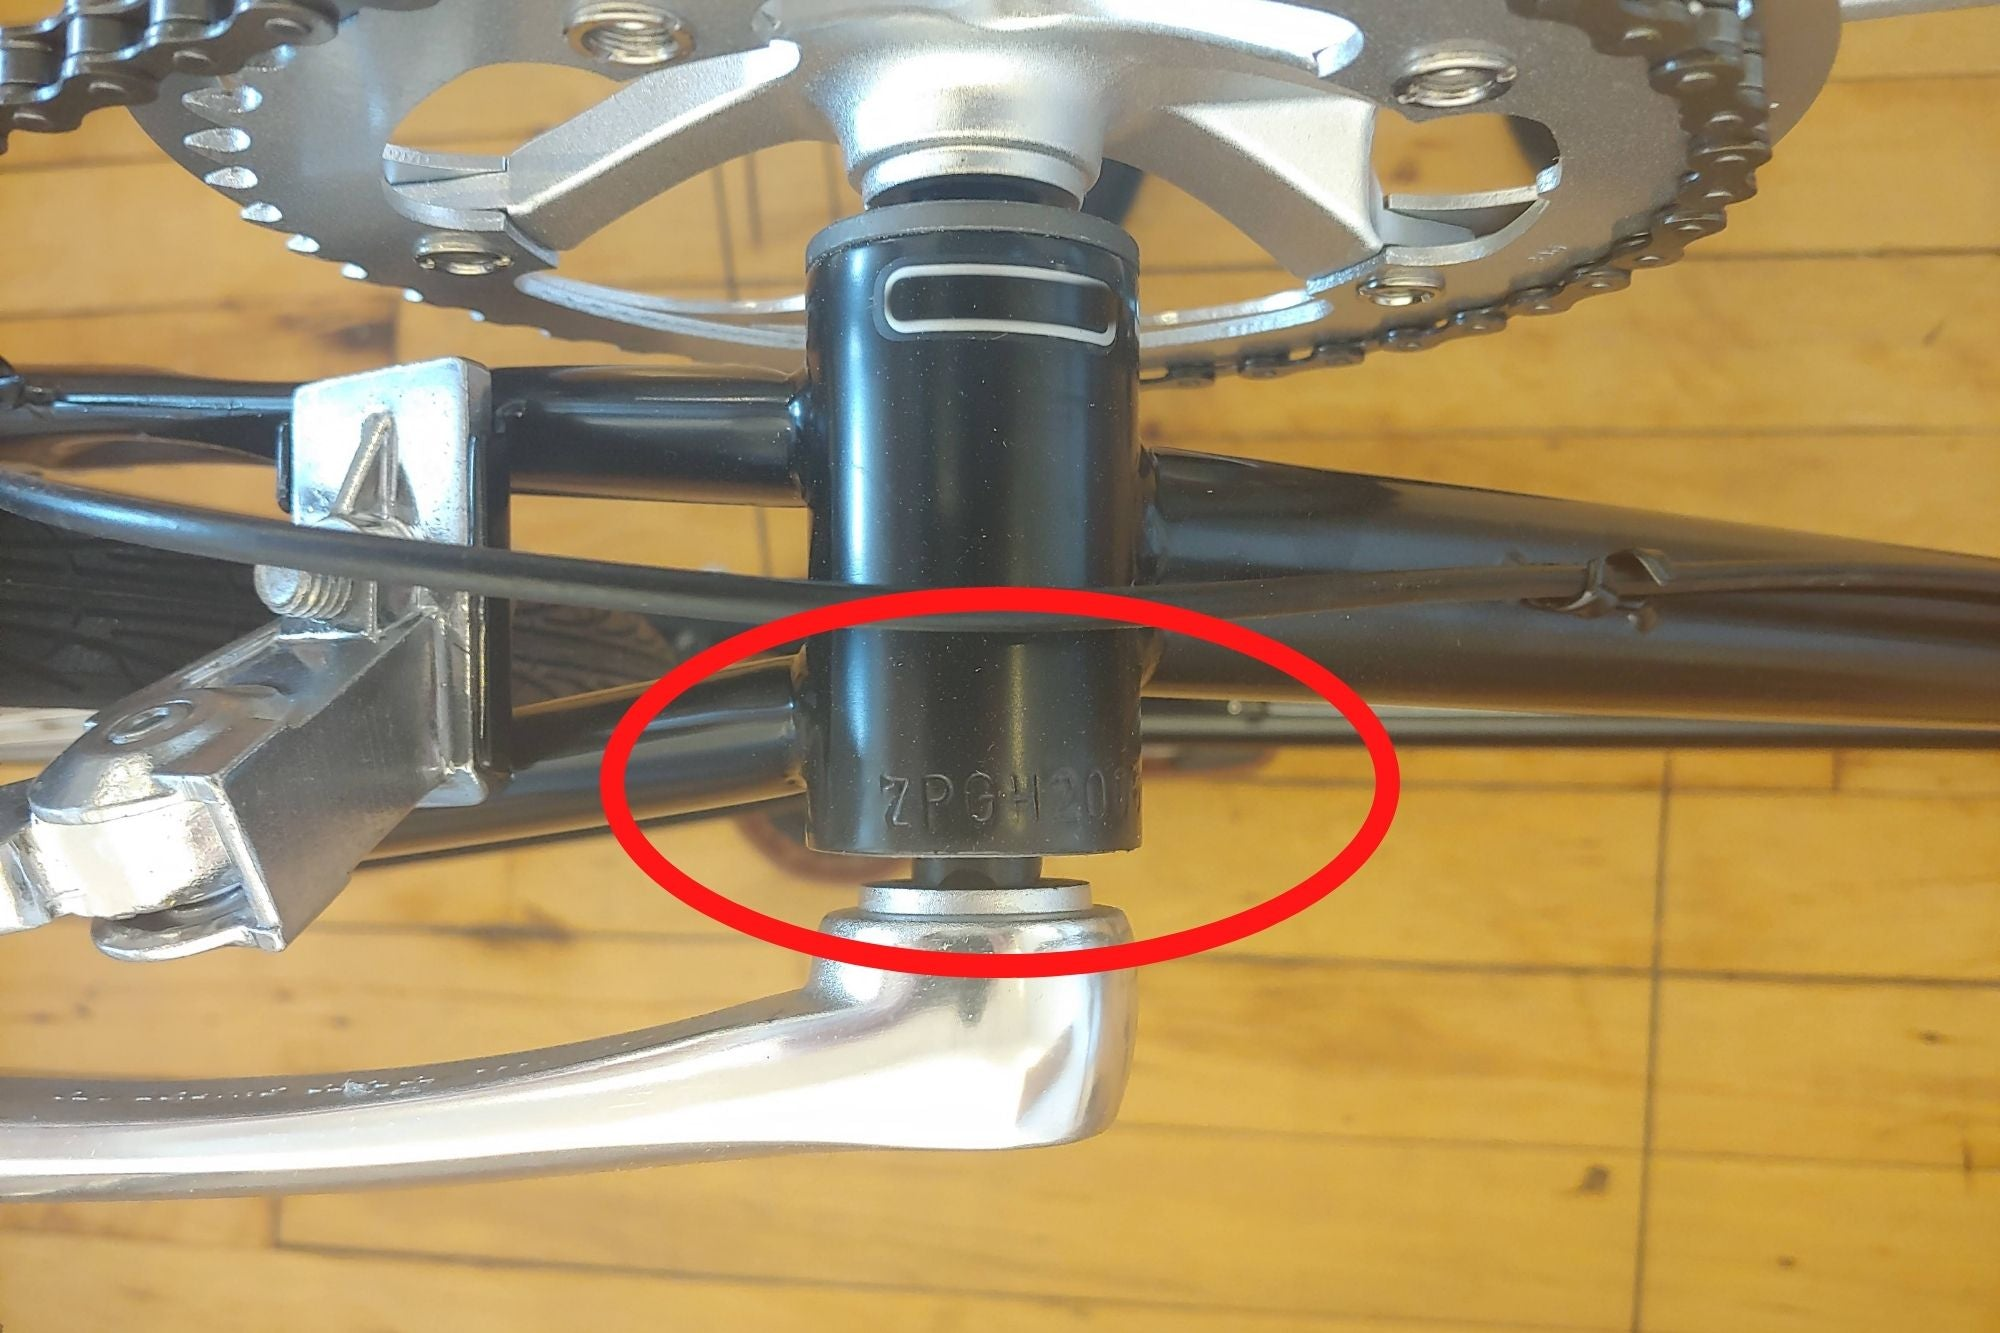 How to Find your Bike's Serial Number